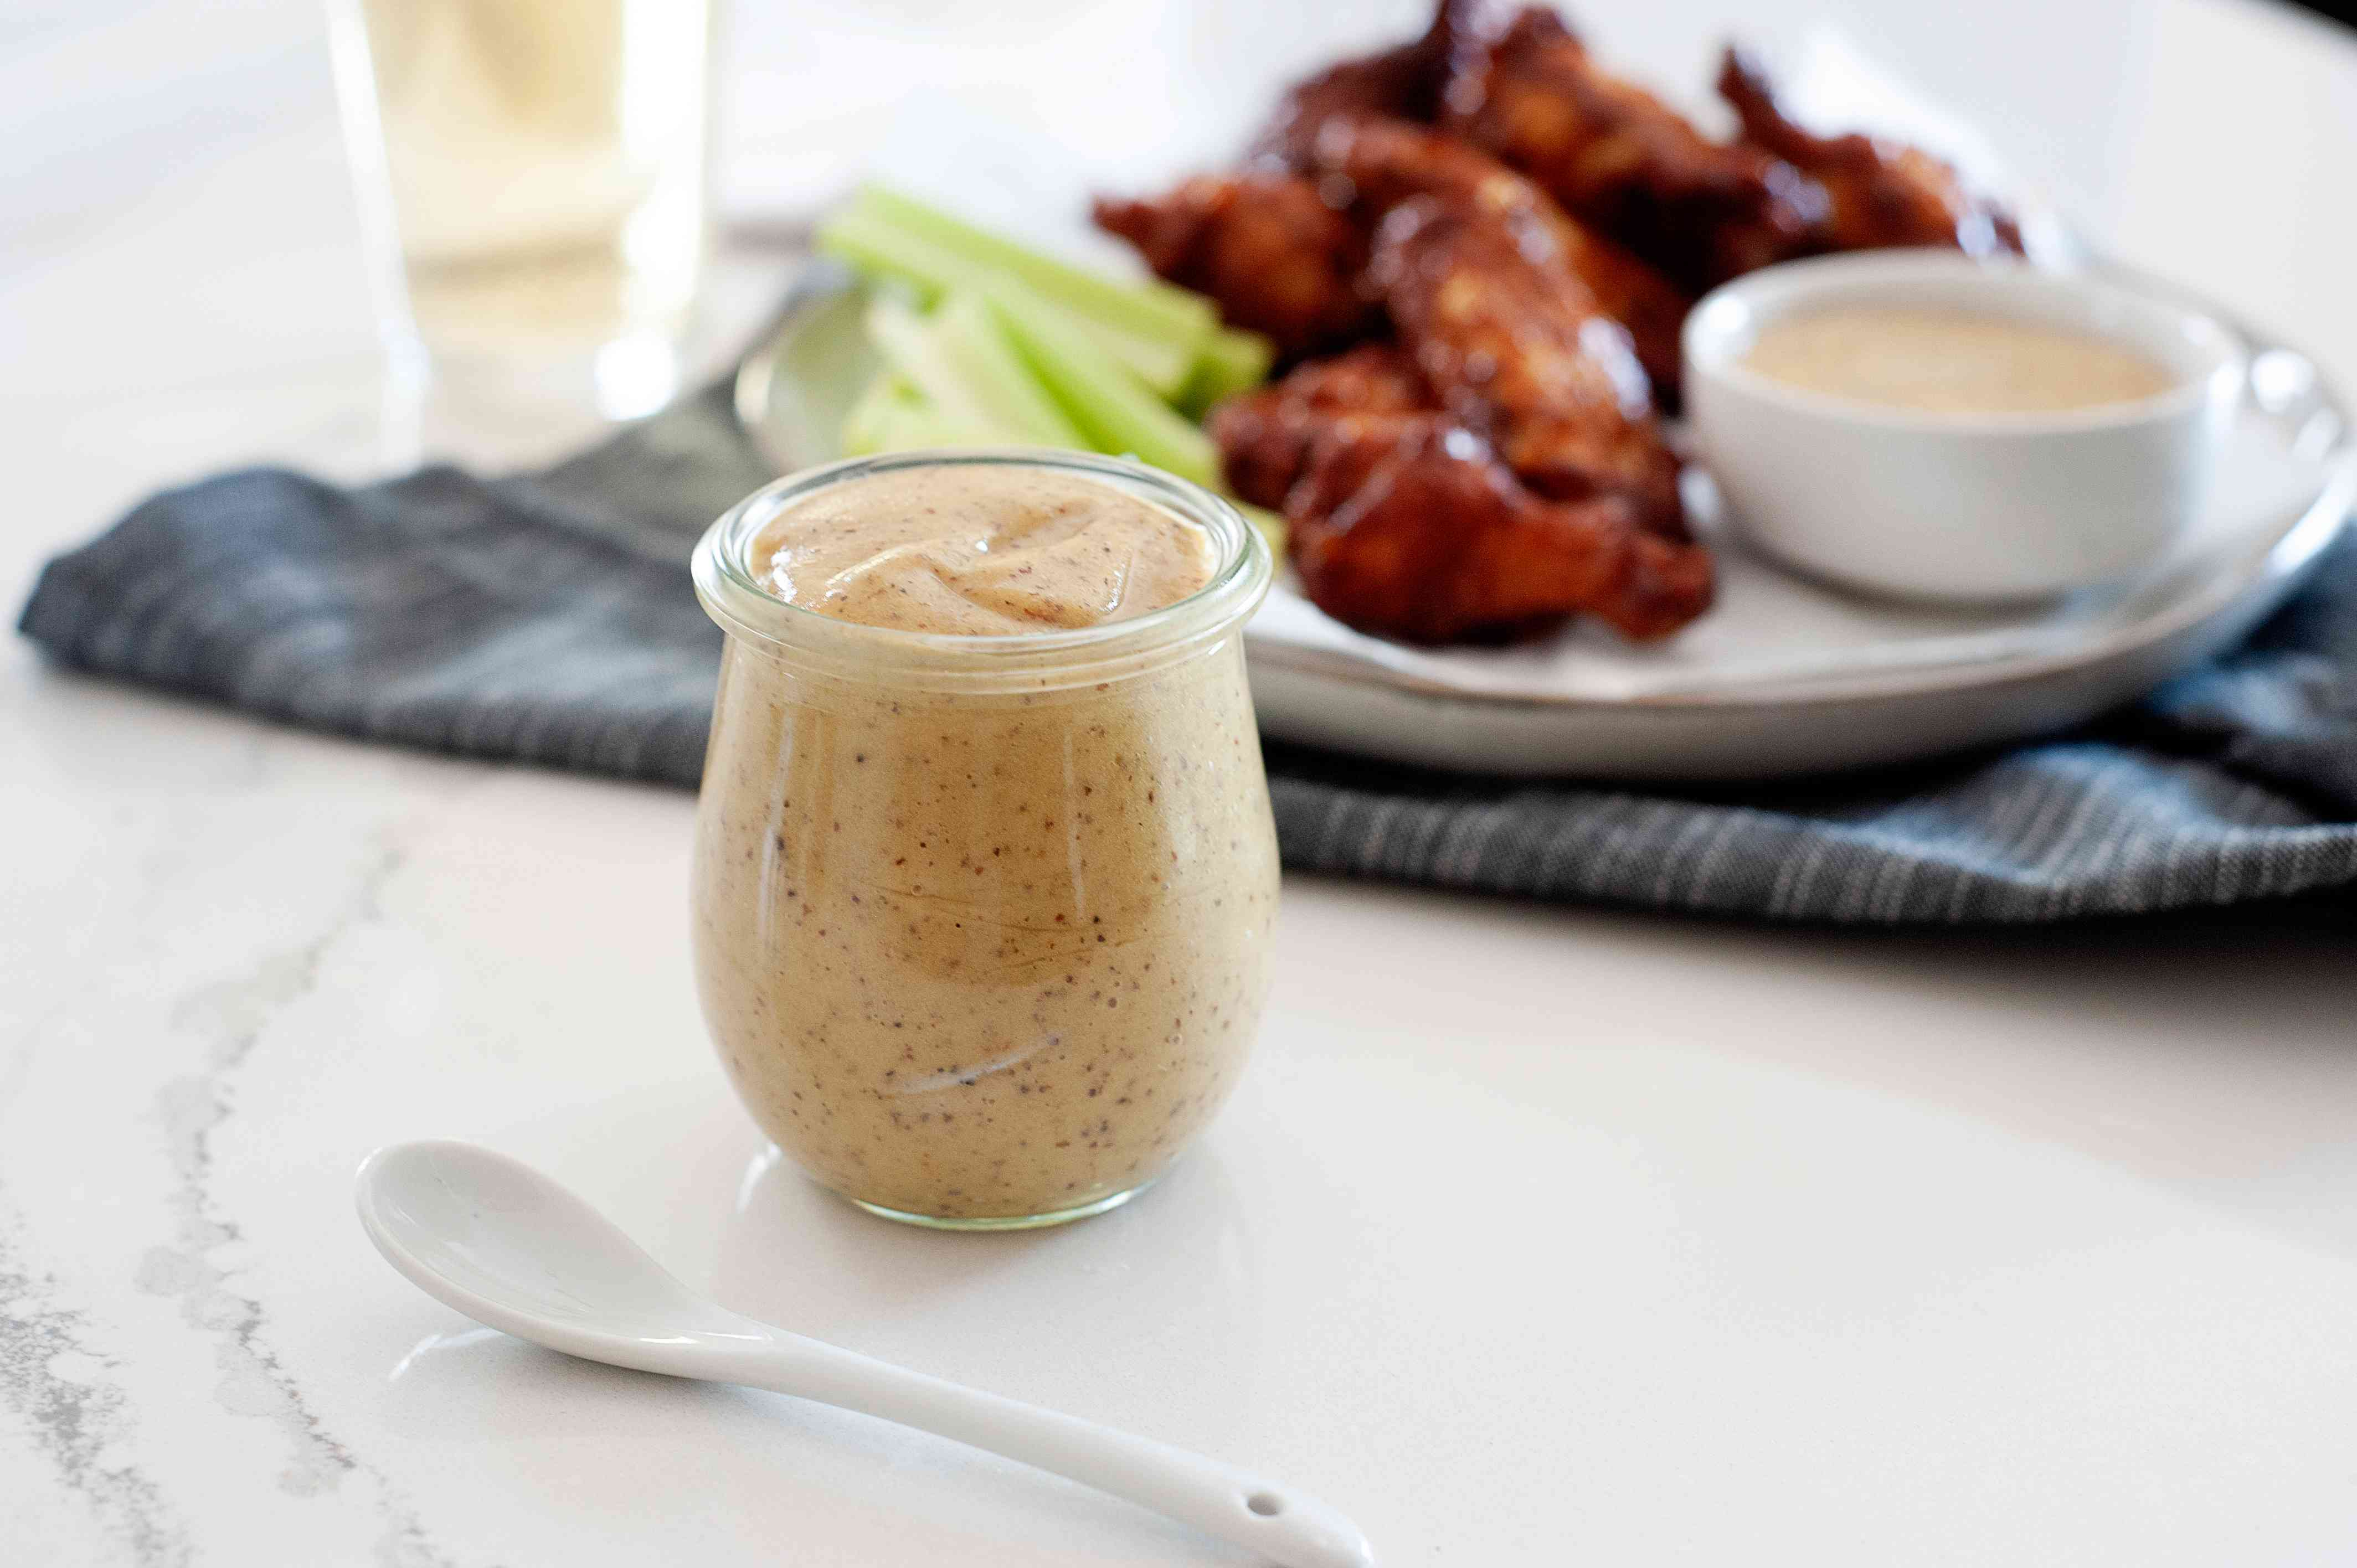 Side view of homemade honey mustard in a glass jar with a plate of chicken wings behind it.